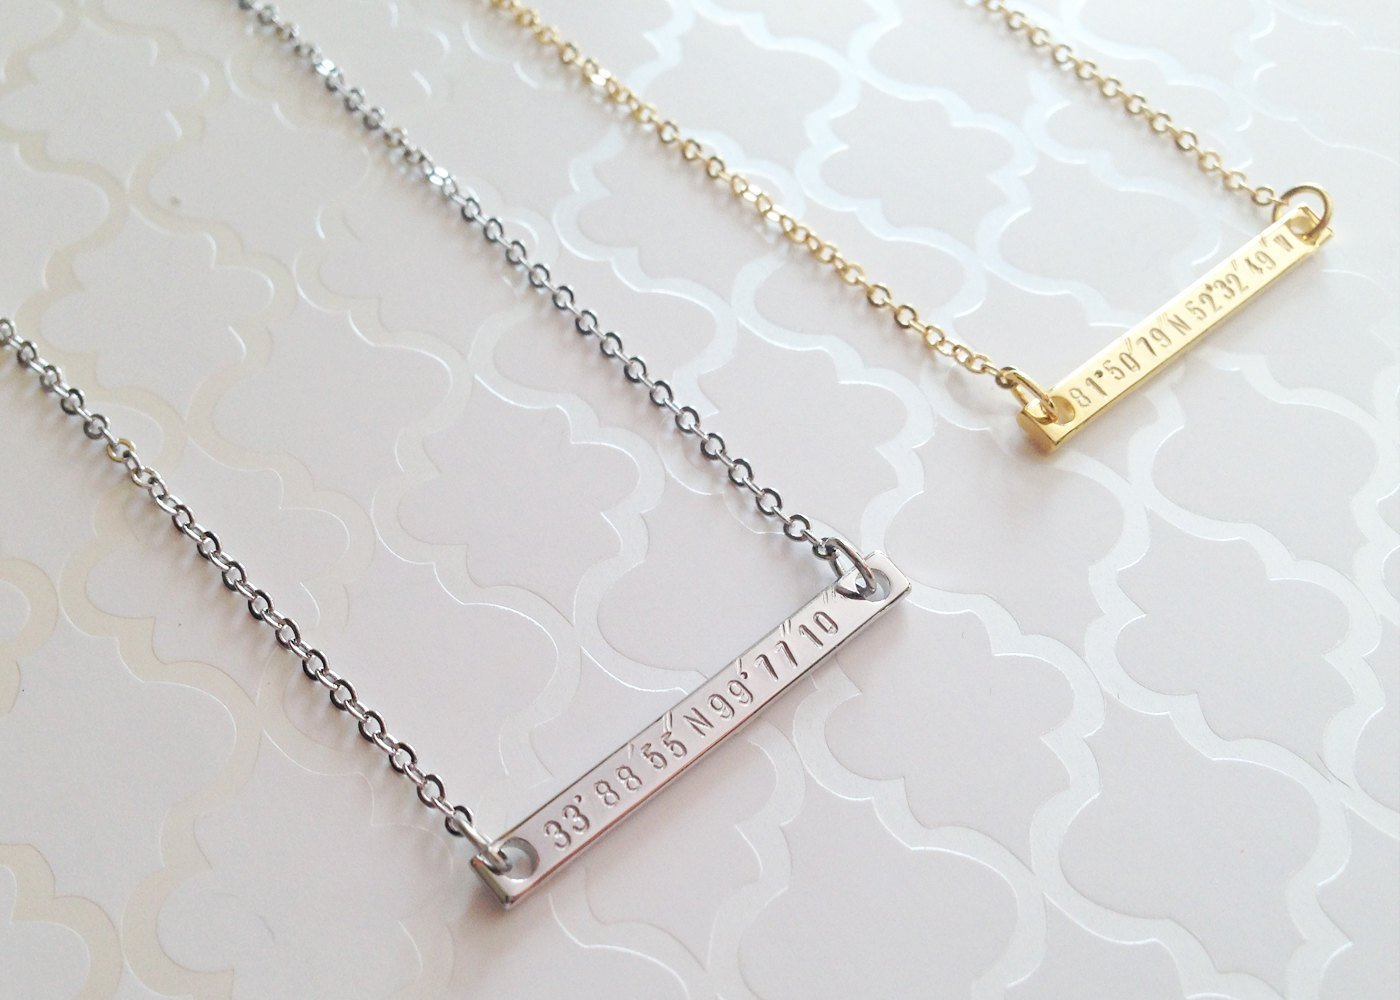 Amazon super dainty gps coordinate necklace personalized gold amazon super dainty gps coordinate necklace personalized gold silver bar necklace gps coordinate necklace 2n handmade aloadofball Image collections